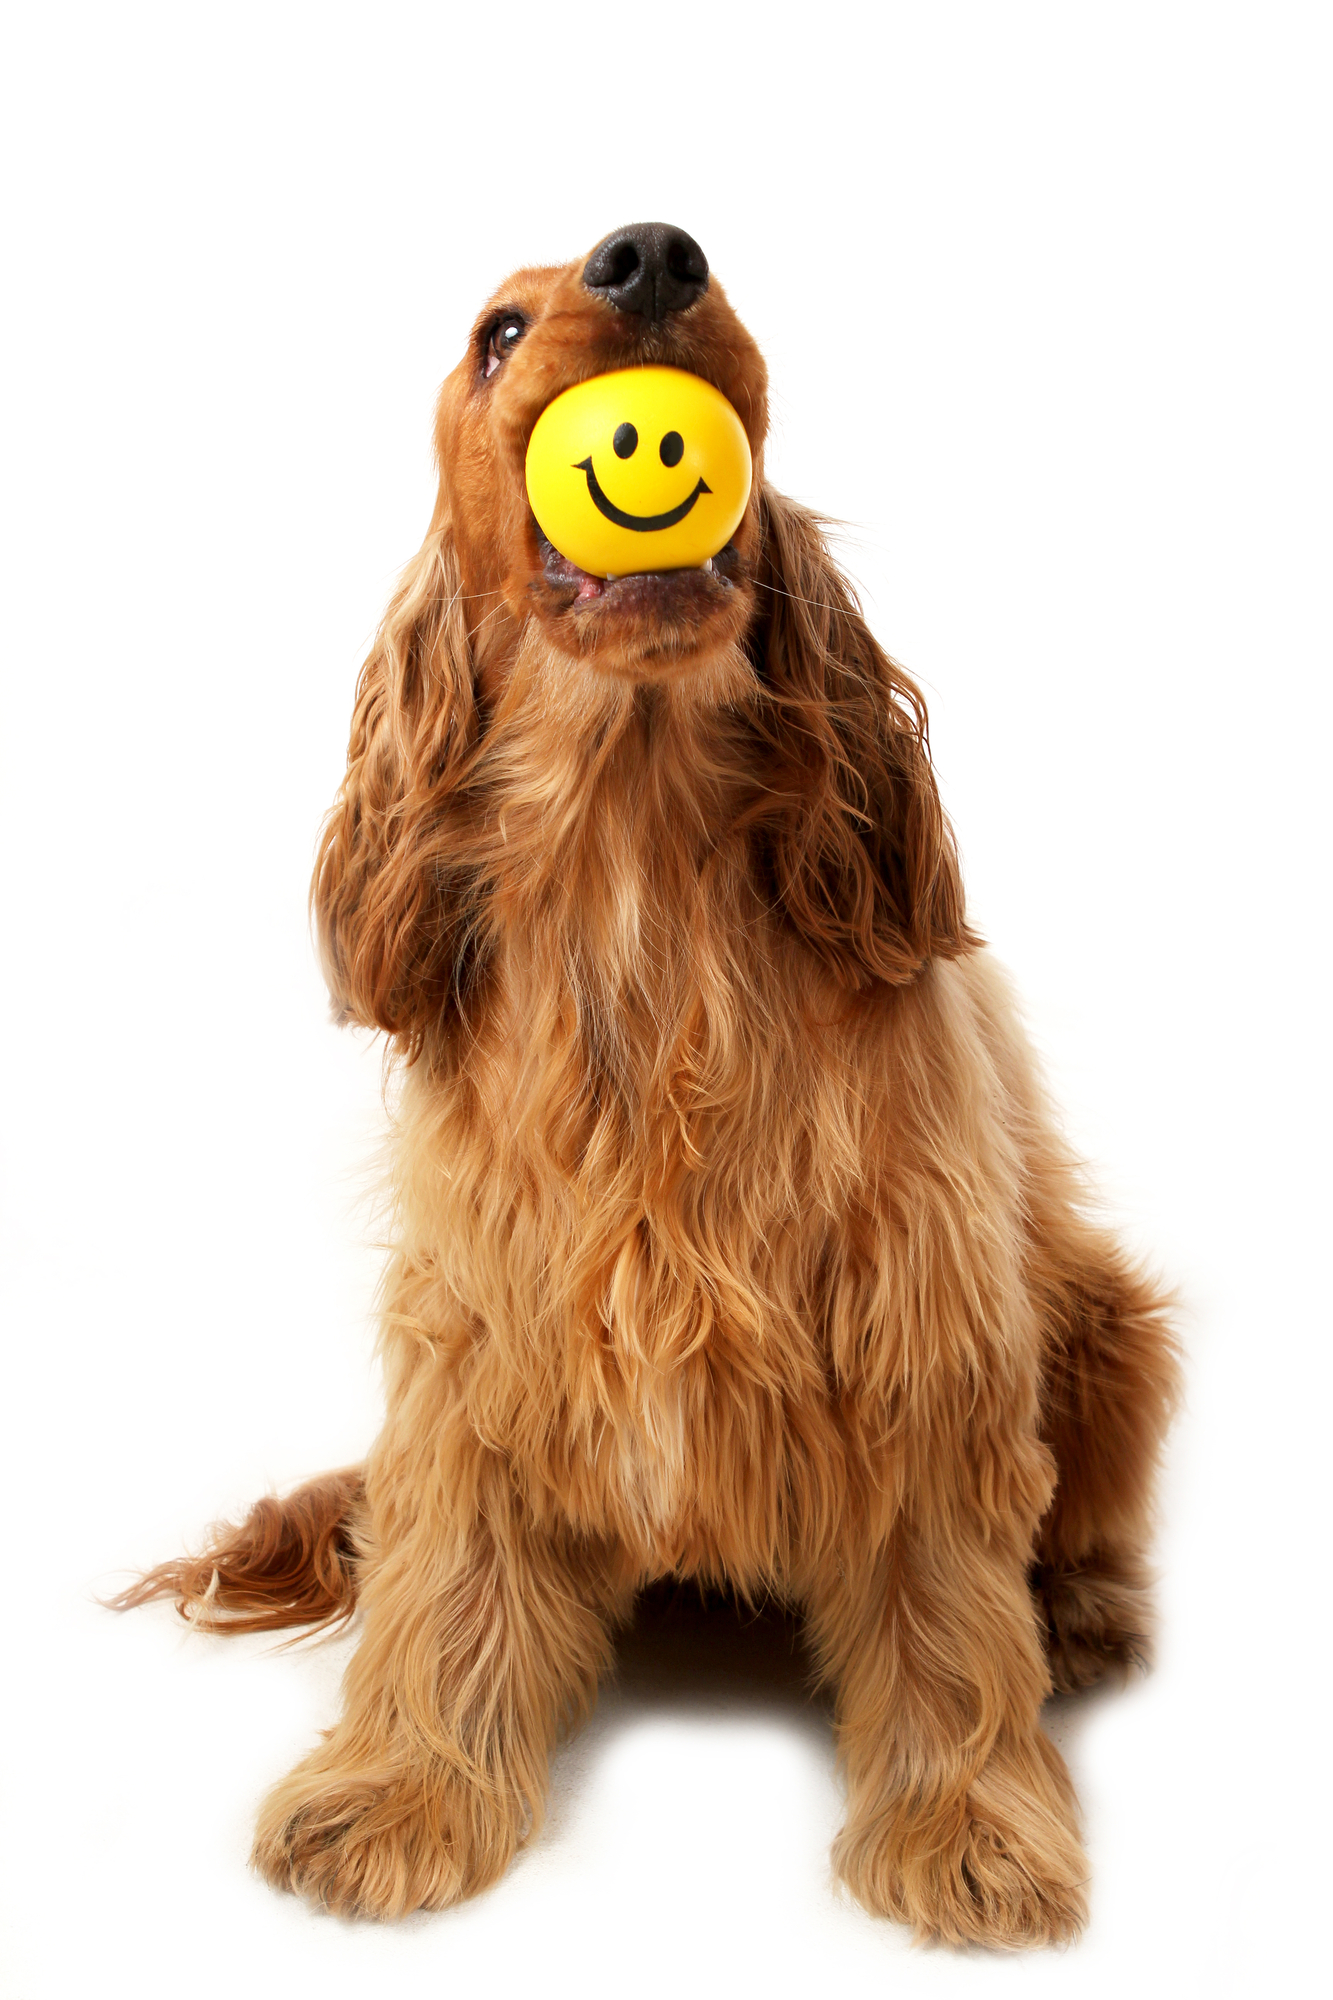 Dog sits with a smiley ball in his mouth